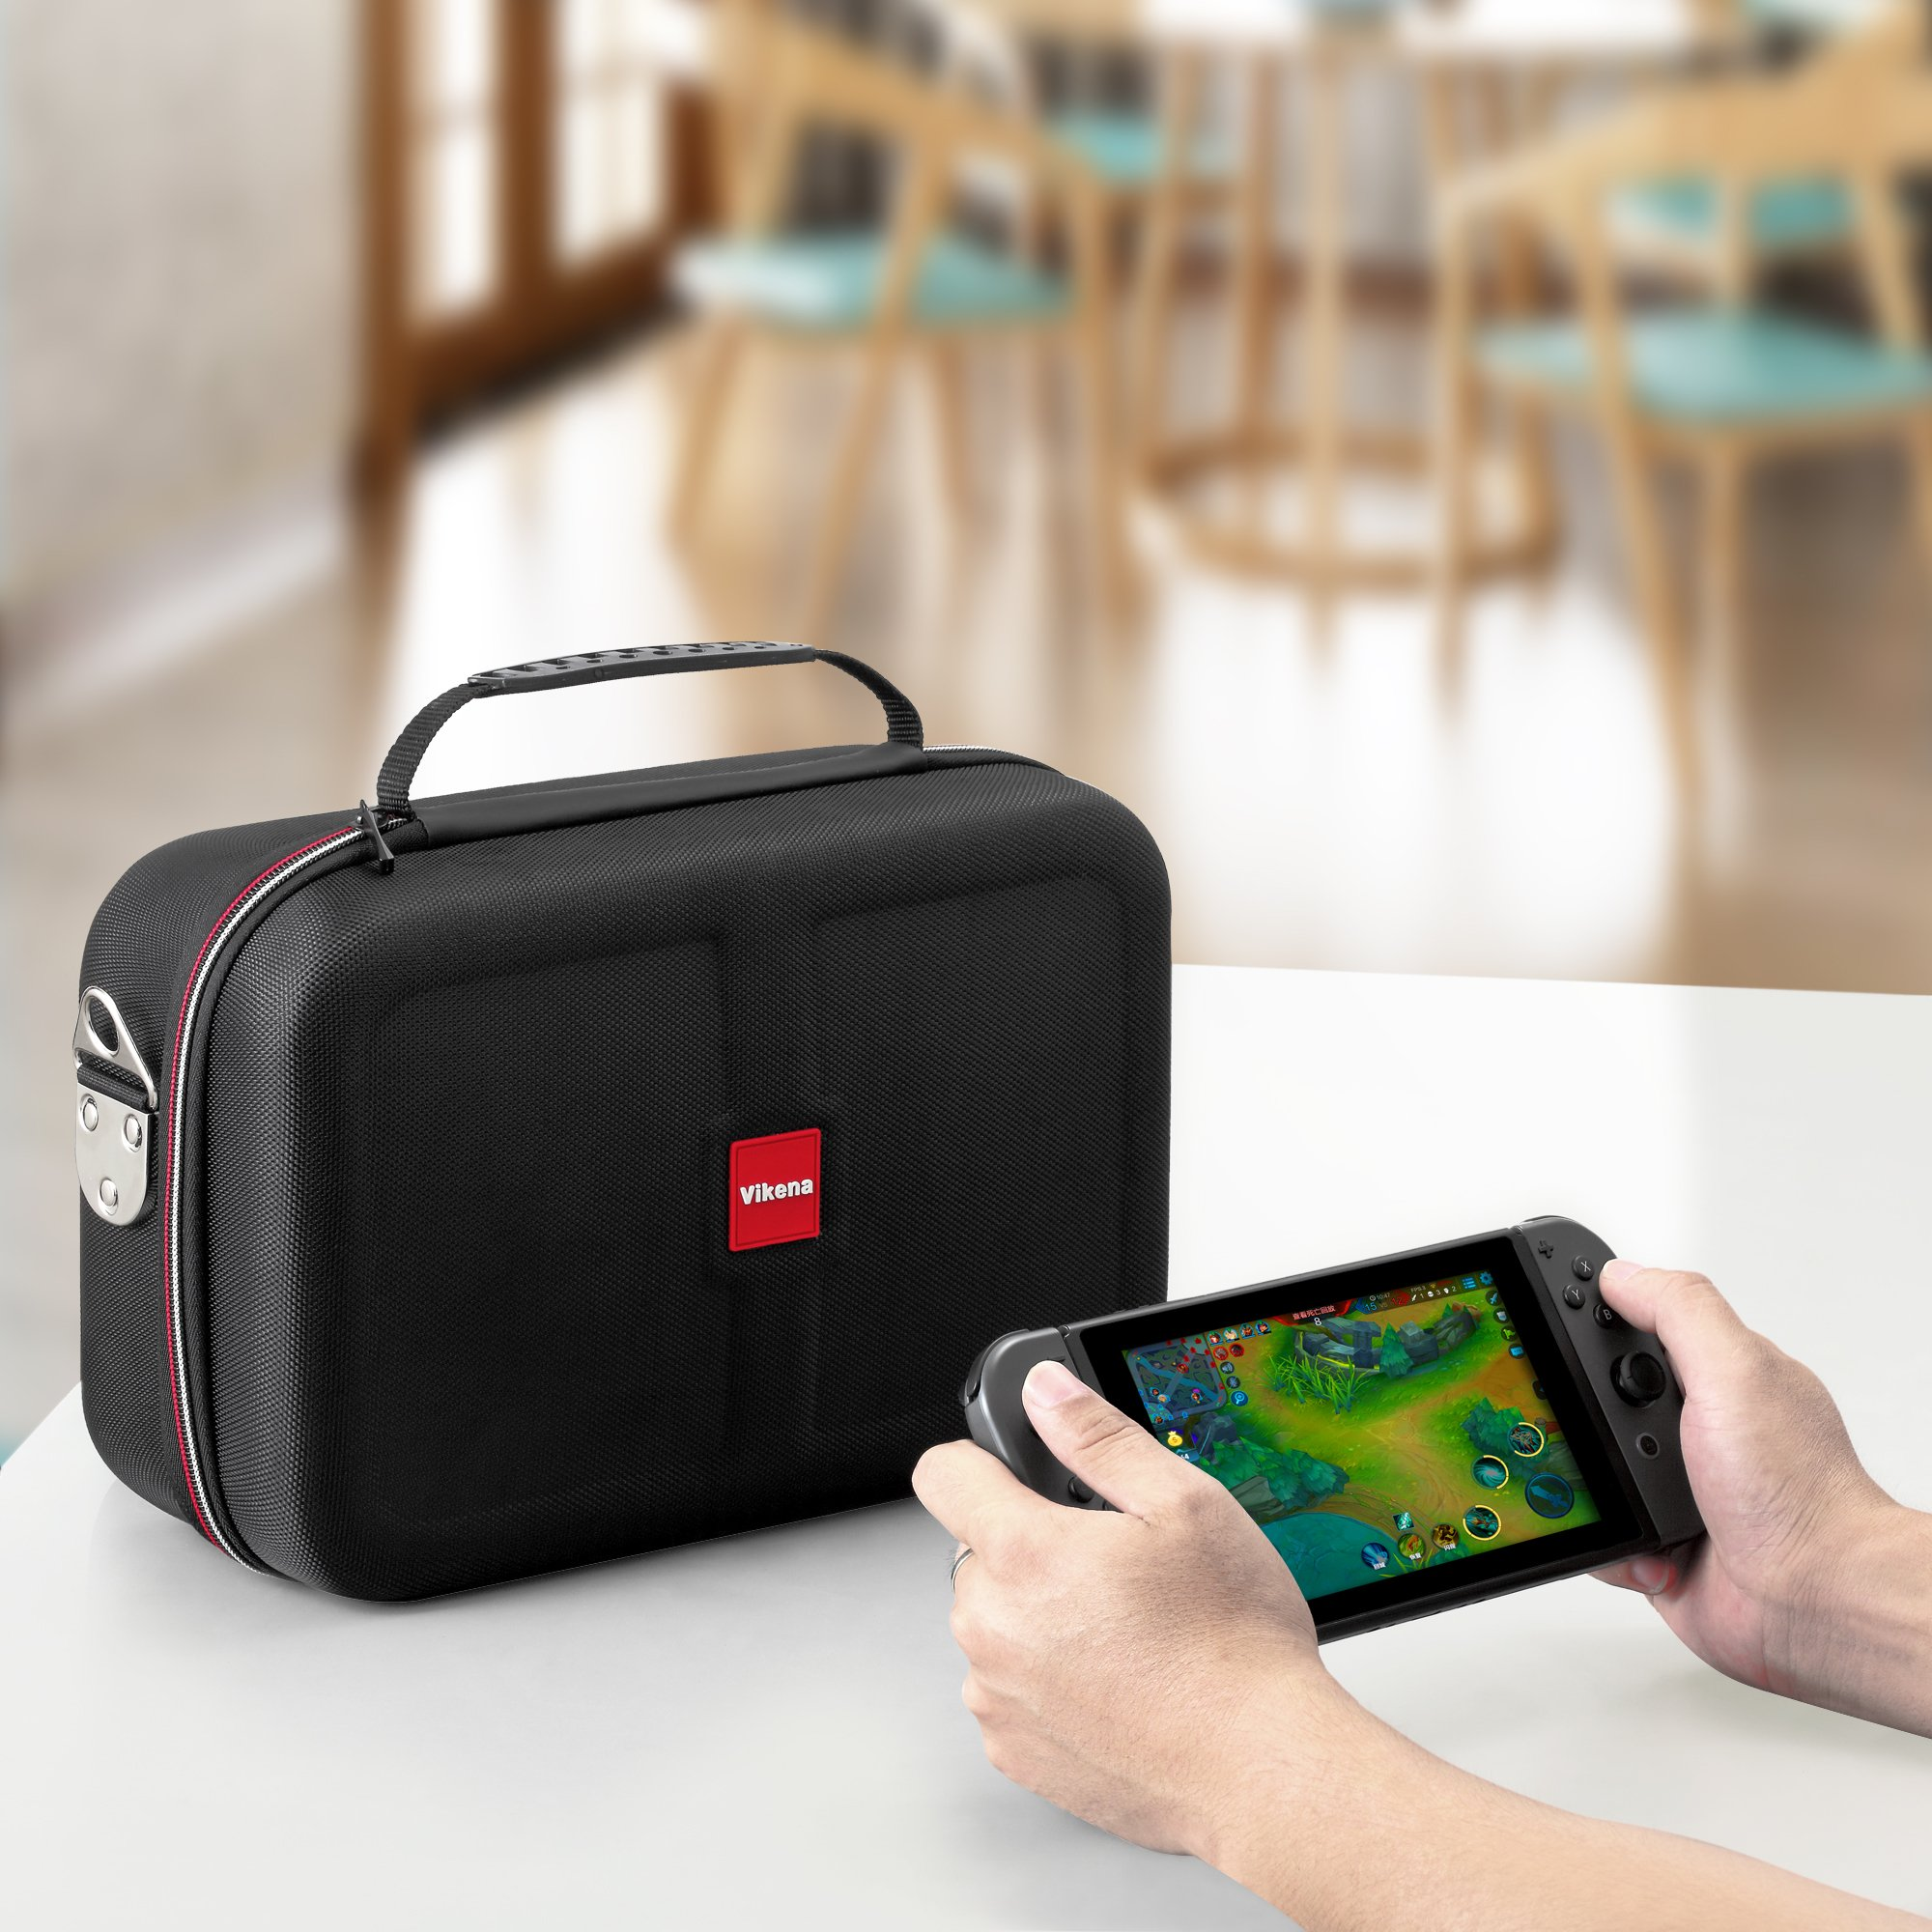 Vikena Deluxe Travel and Storage Case for Nintendo Switch,Game Carrying Case fit for Switch Pro Controller,Switch Console and Accessories,Black by Vikena (Image #6)